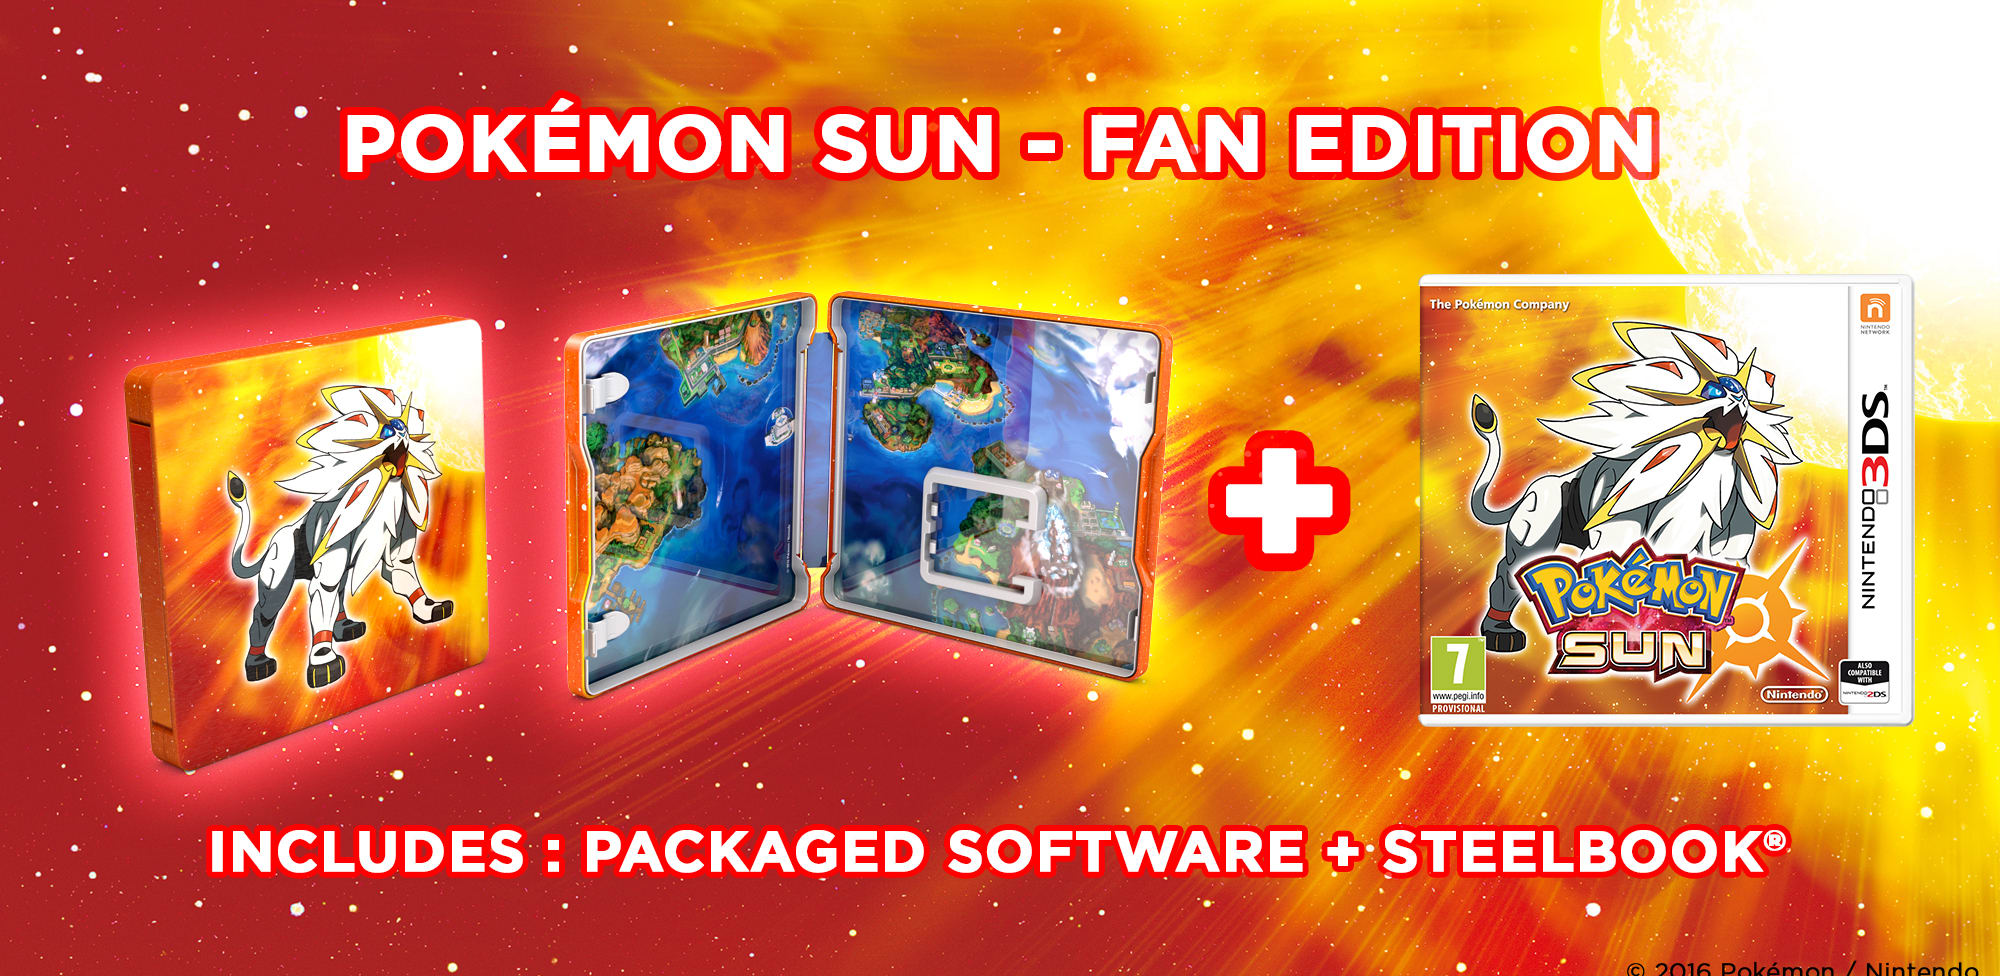 http://img.game.co.uk/images/content/SpecialEditions/Pokémon%20Sun%20SteelBook%20Announcement.jpg